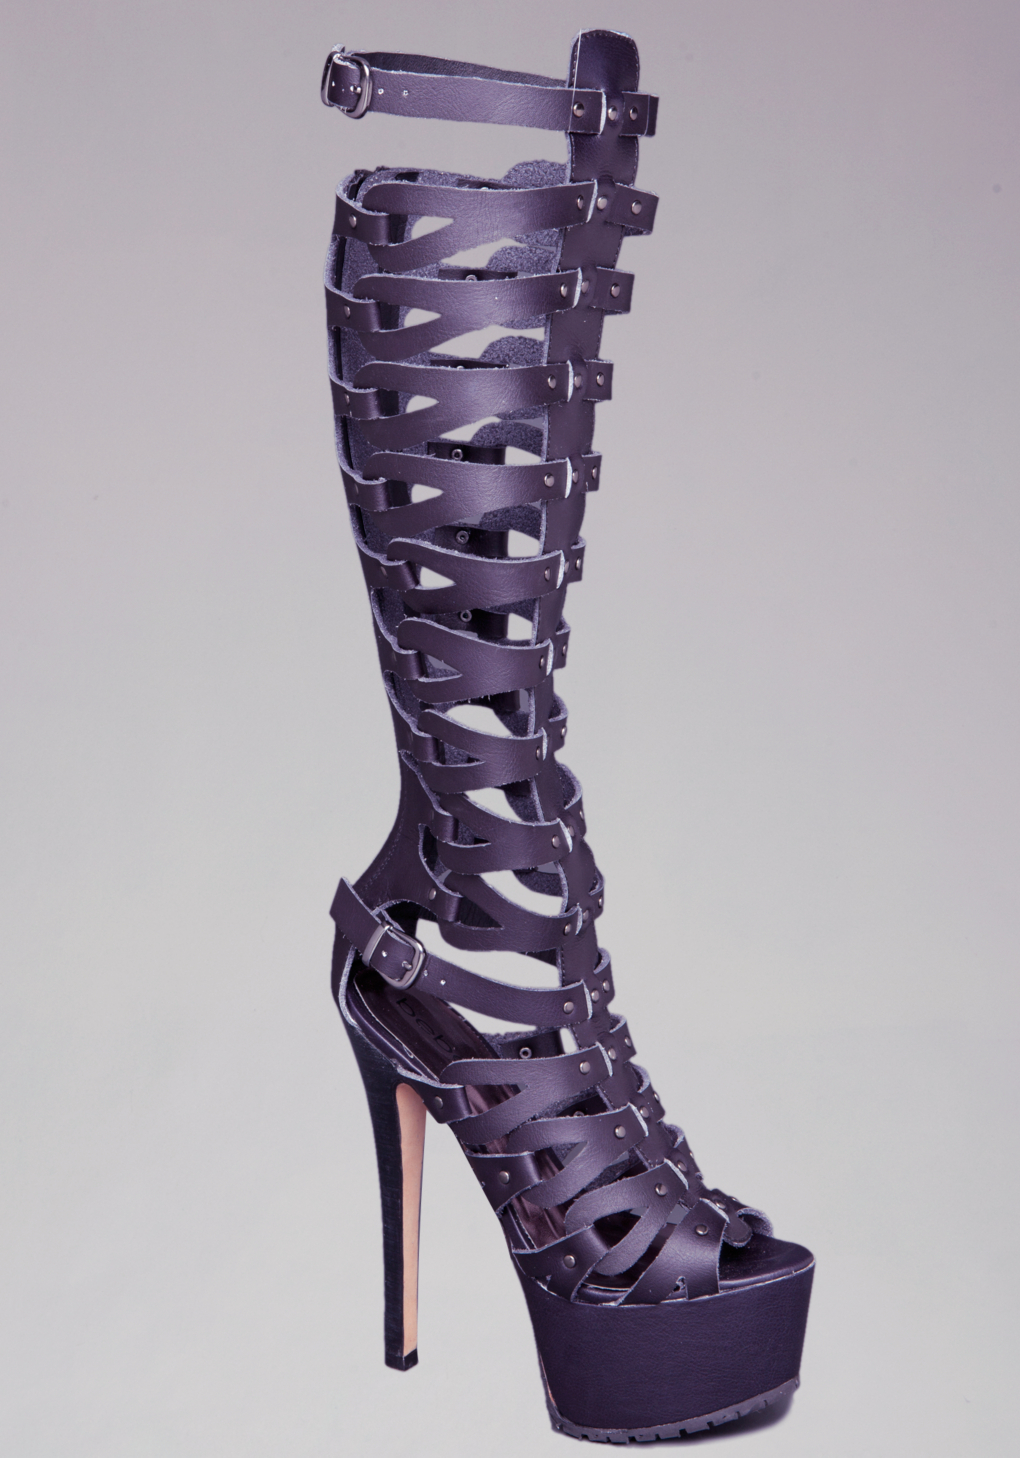 Bebe Tacorda Gladiator Platform Sandals in Purple  Lyst